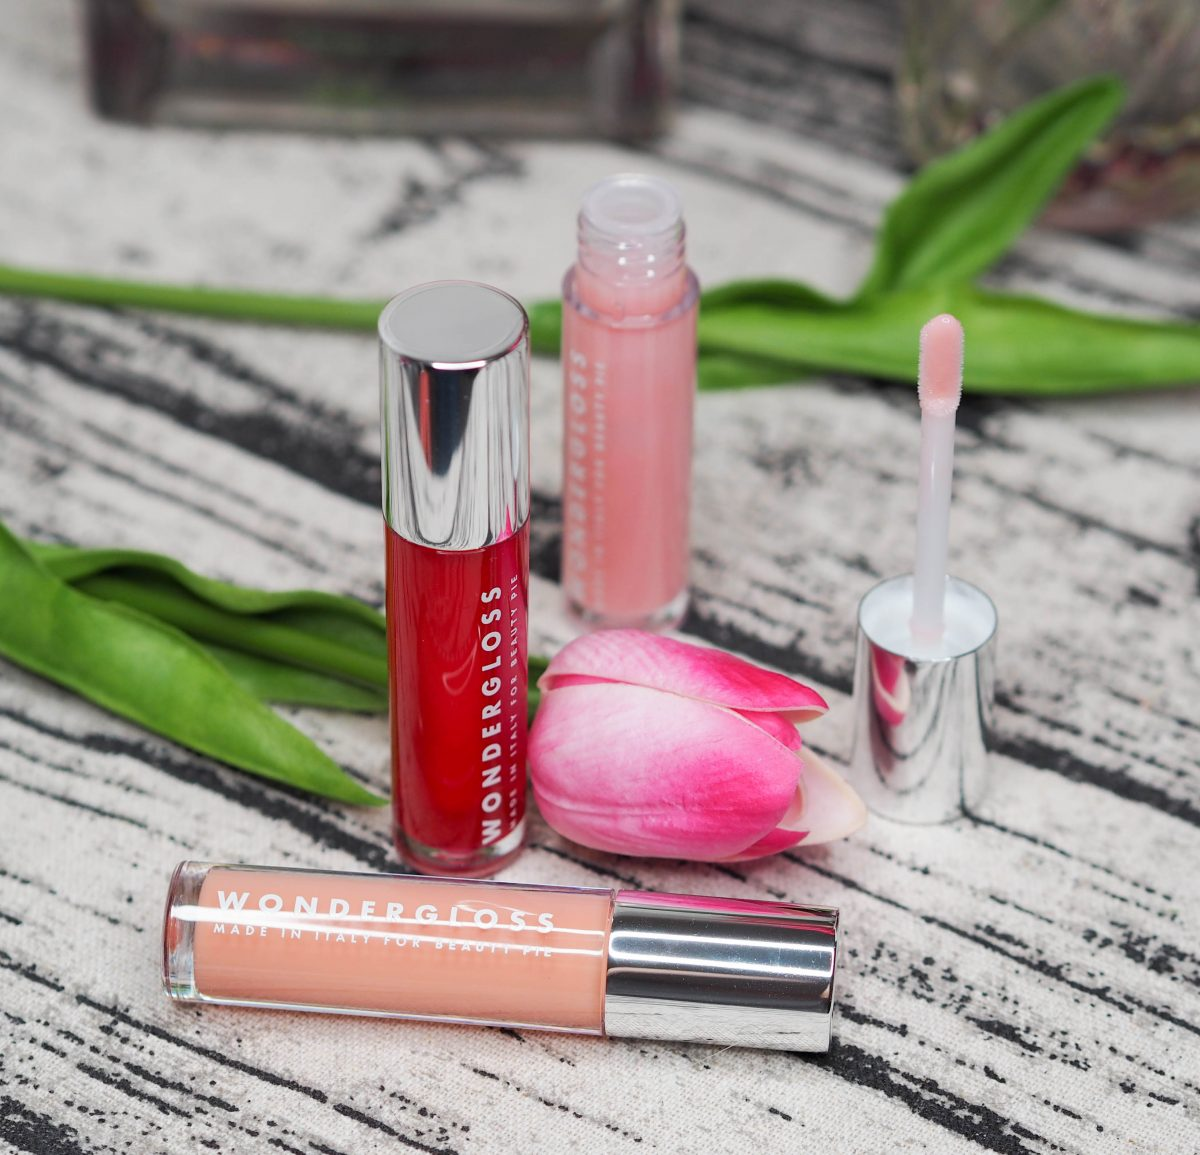 Beauty Pie Wondergloss Lip Oil Trio